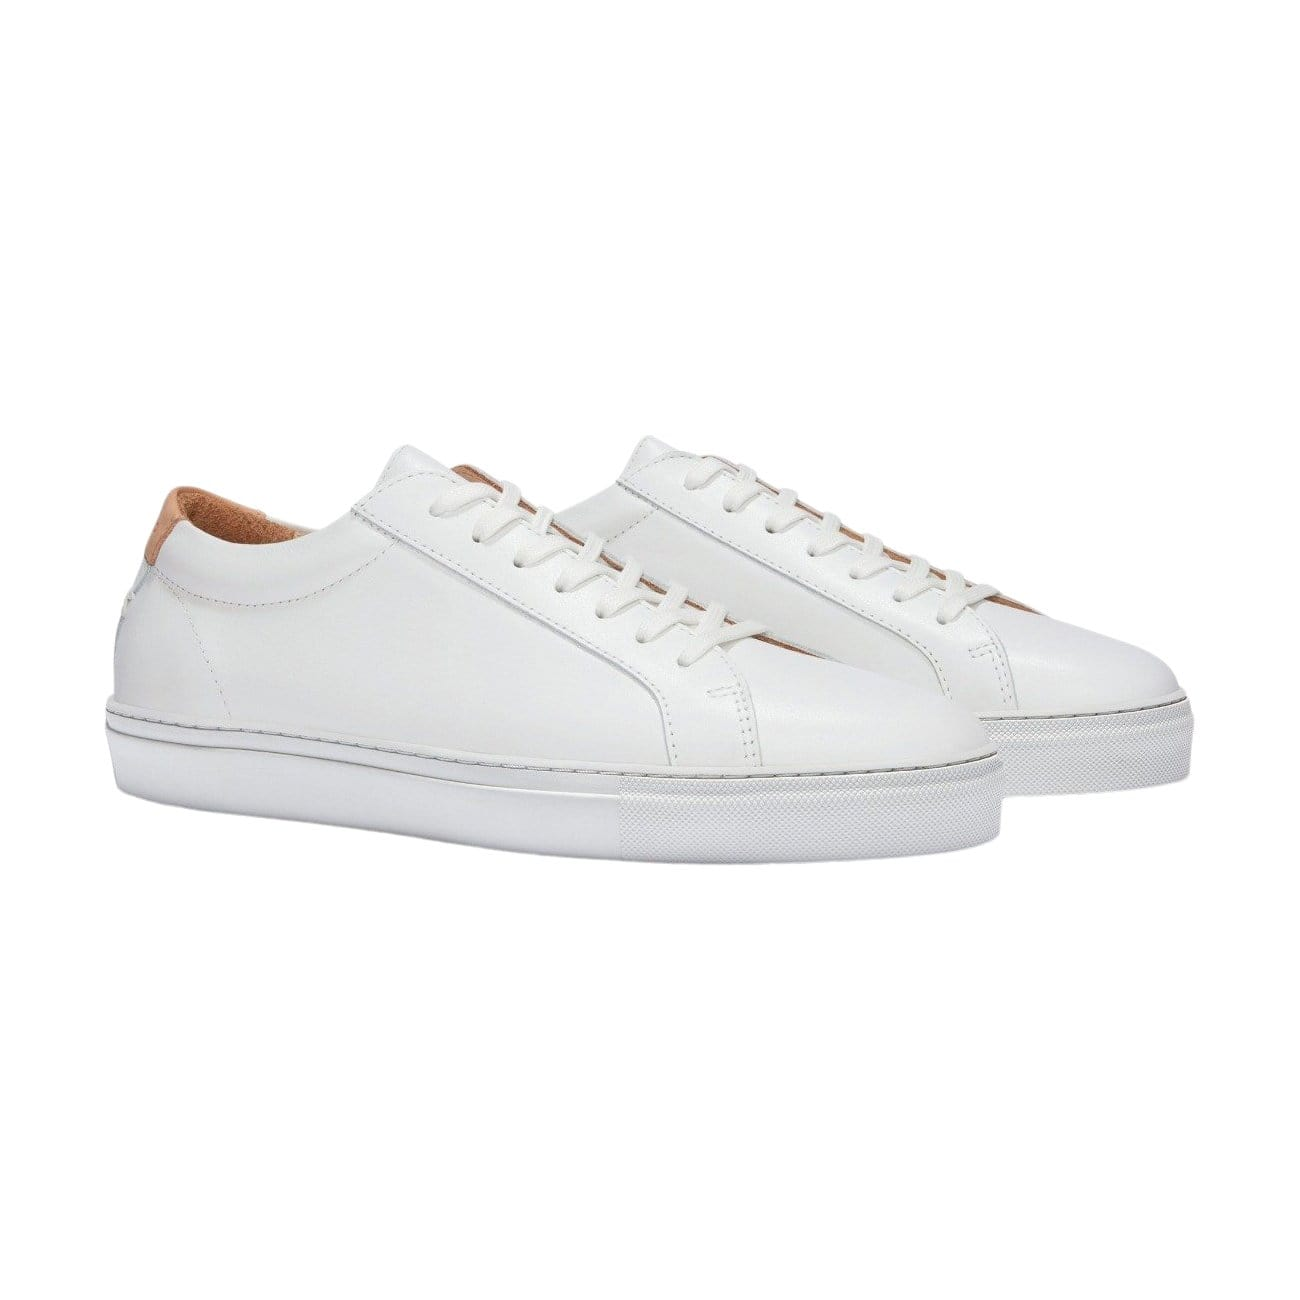 UNIFORM STANDARD SERIES 1 Women's SERIES 1 White Leather Sneaker